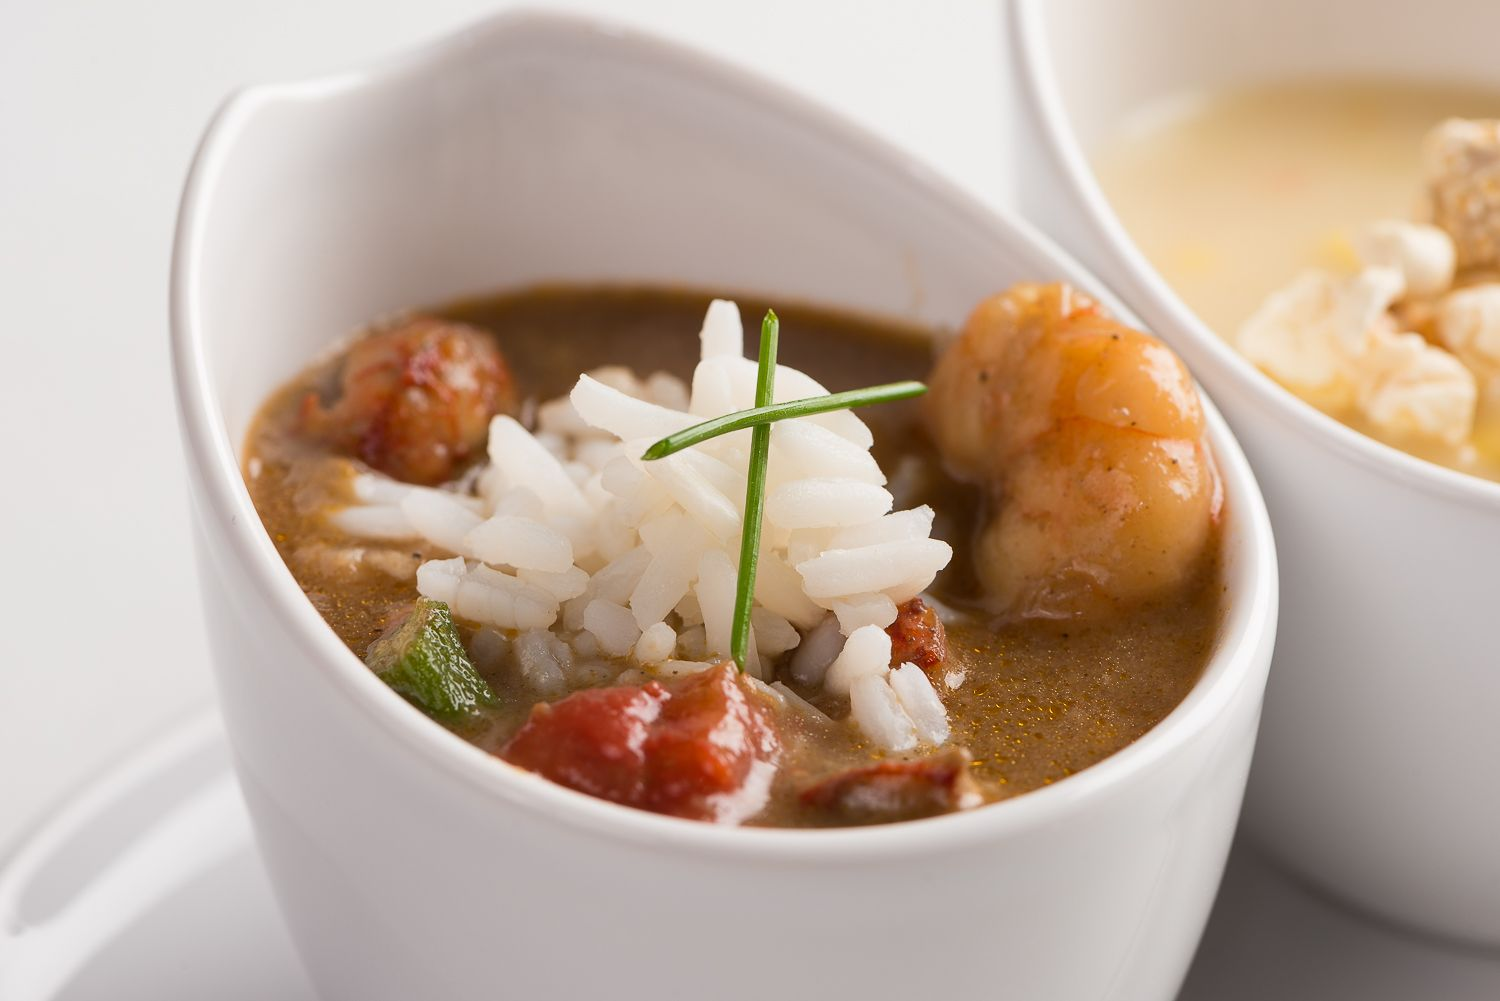 Best Places To Find Gumbo In New Orleans With Images Gumbo Seafood Gumbo Louisiana Recipes